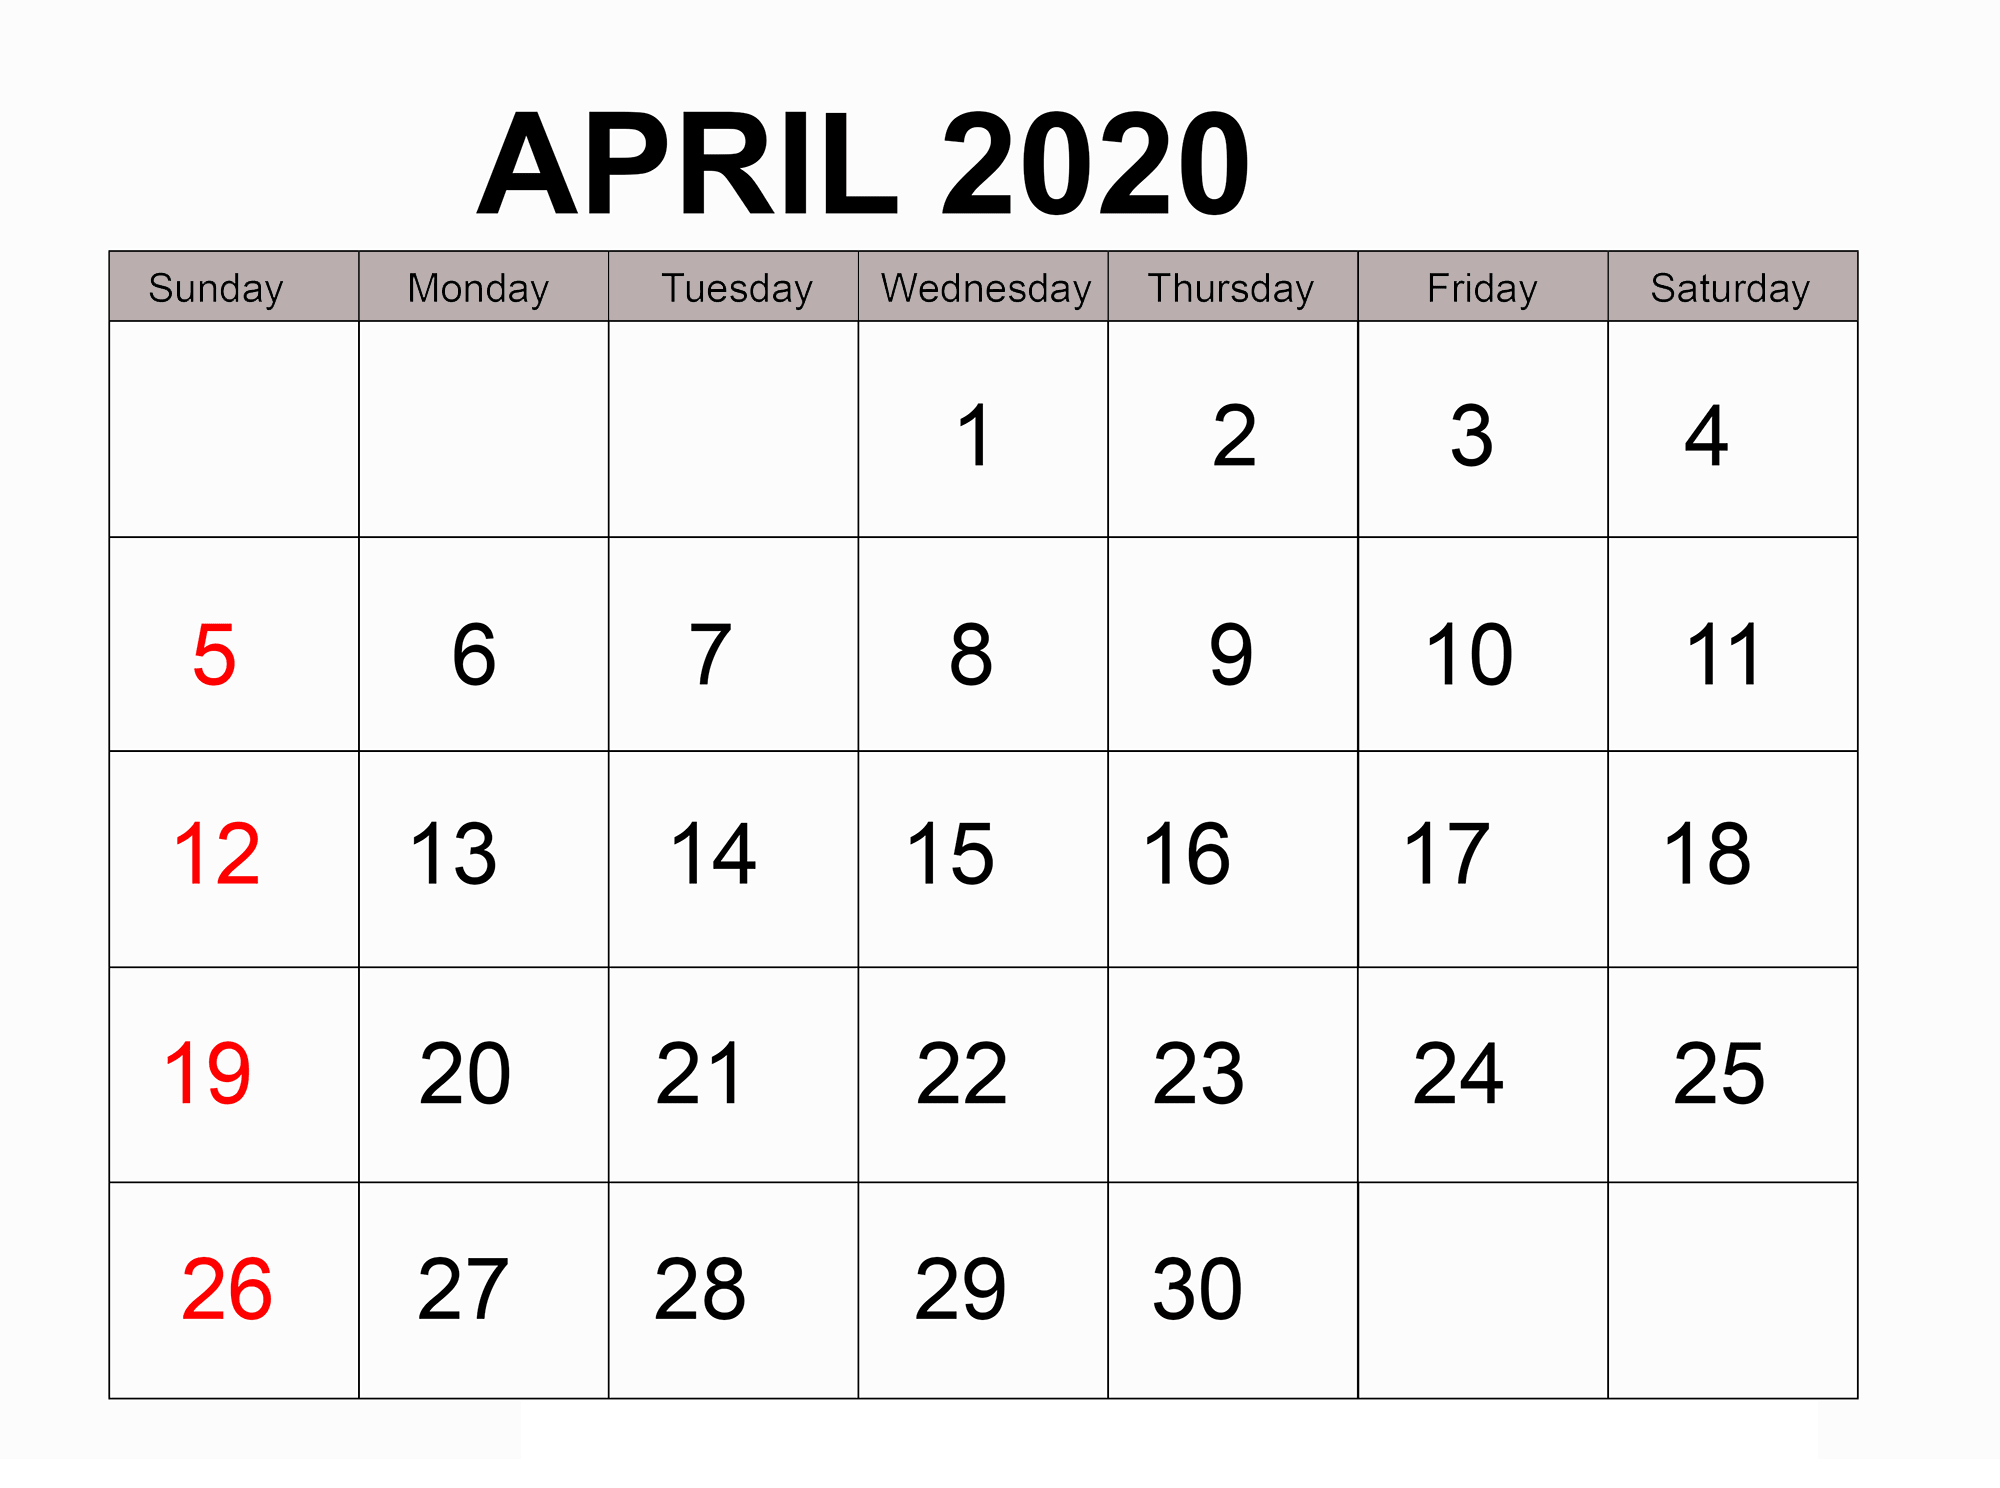 Free Printable Calendar April 2020 For Daily Schedule | Free